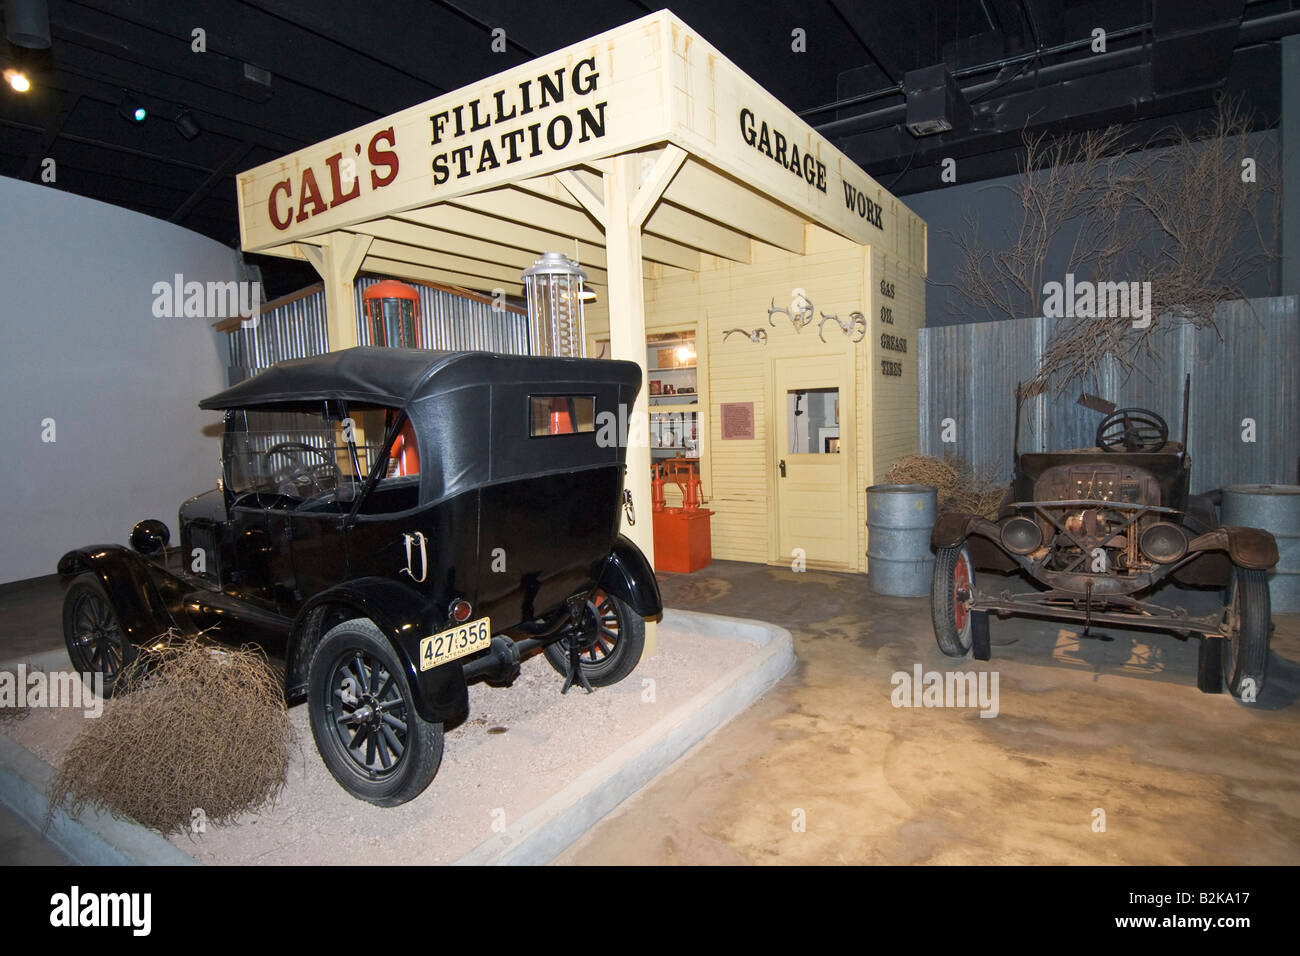 Texas Canyon Panhandle Plains Historical Museum gas filling station exhibit circa 1930s car is a 1926 Ford - Stock Image